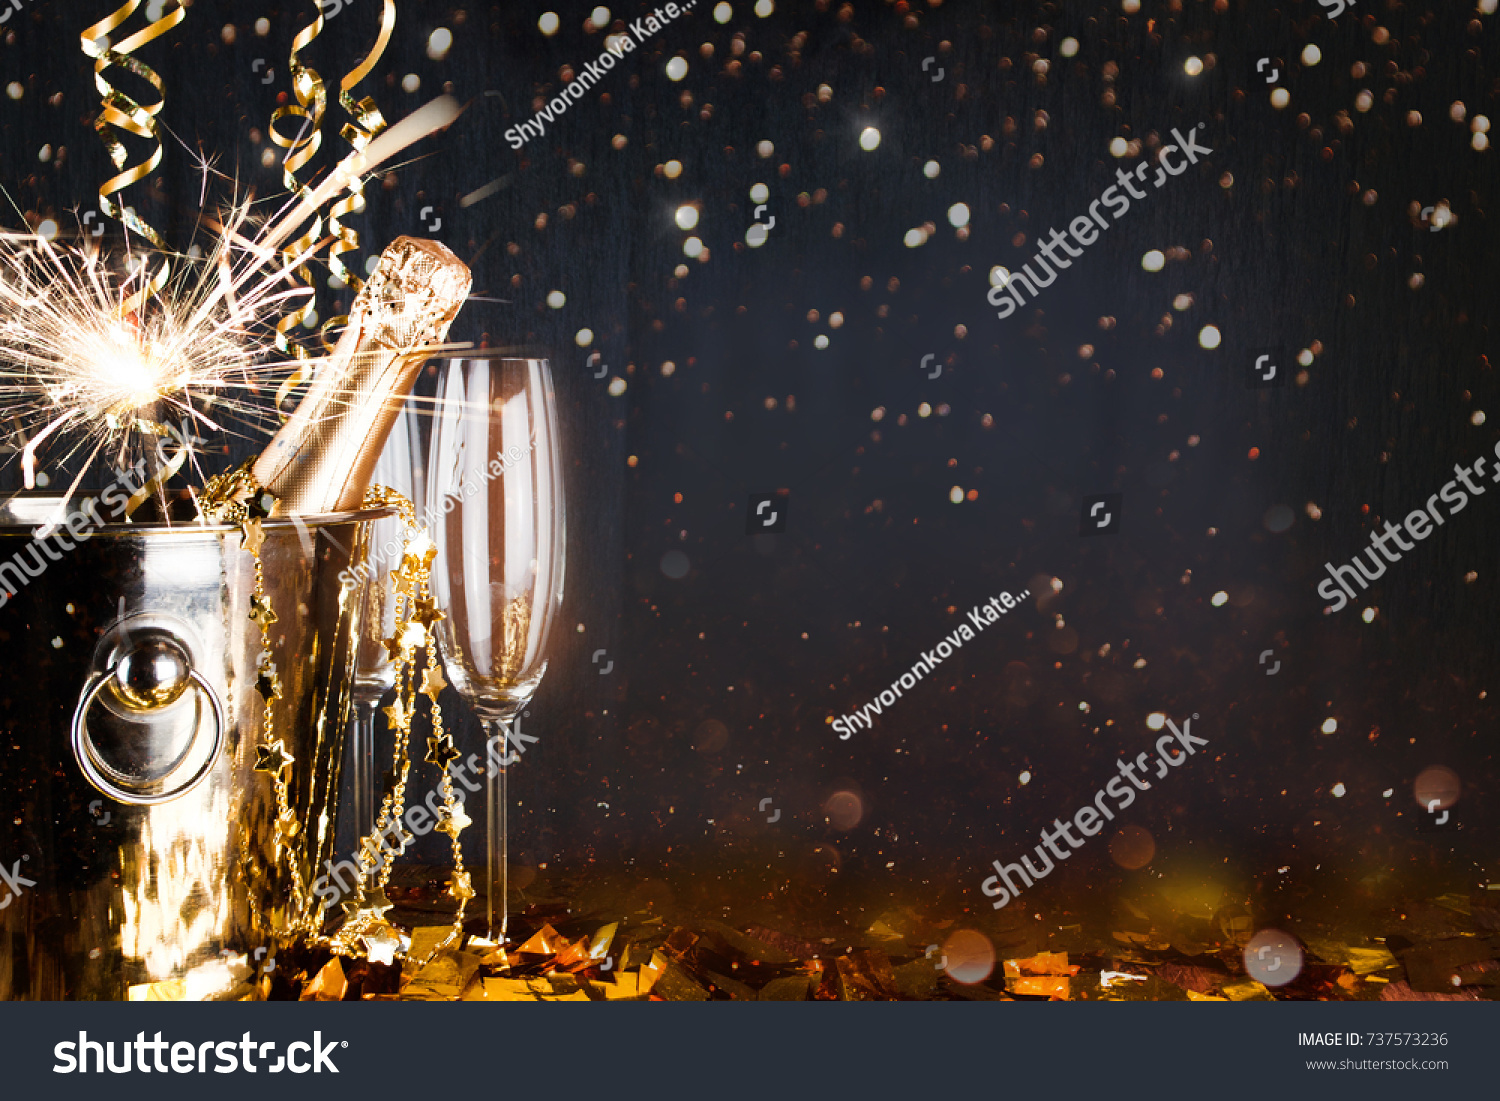 New years eve celebration background with champagne. New Years Eve celebration background with pair of flutes and bottle of champagne  #737573236